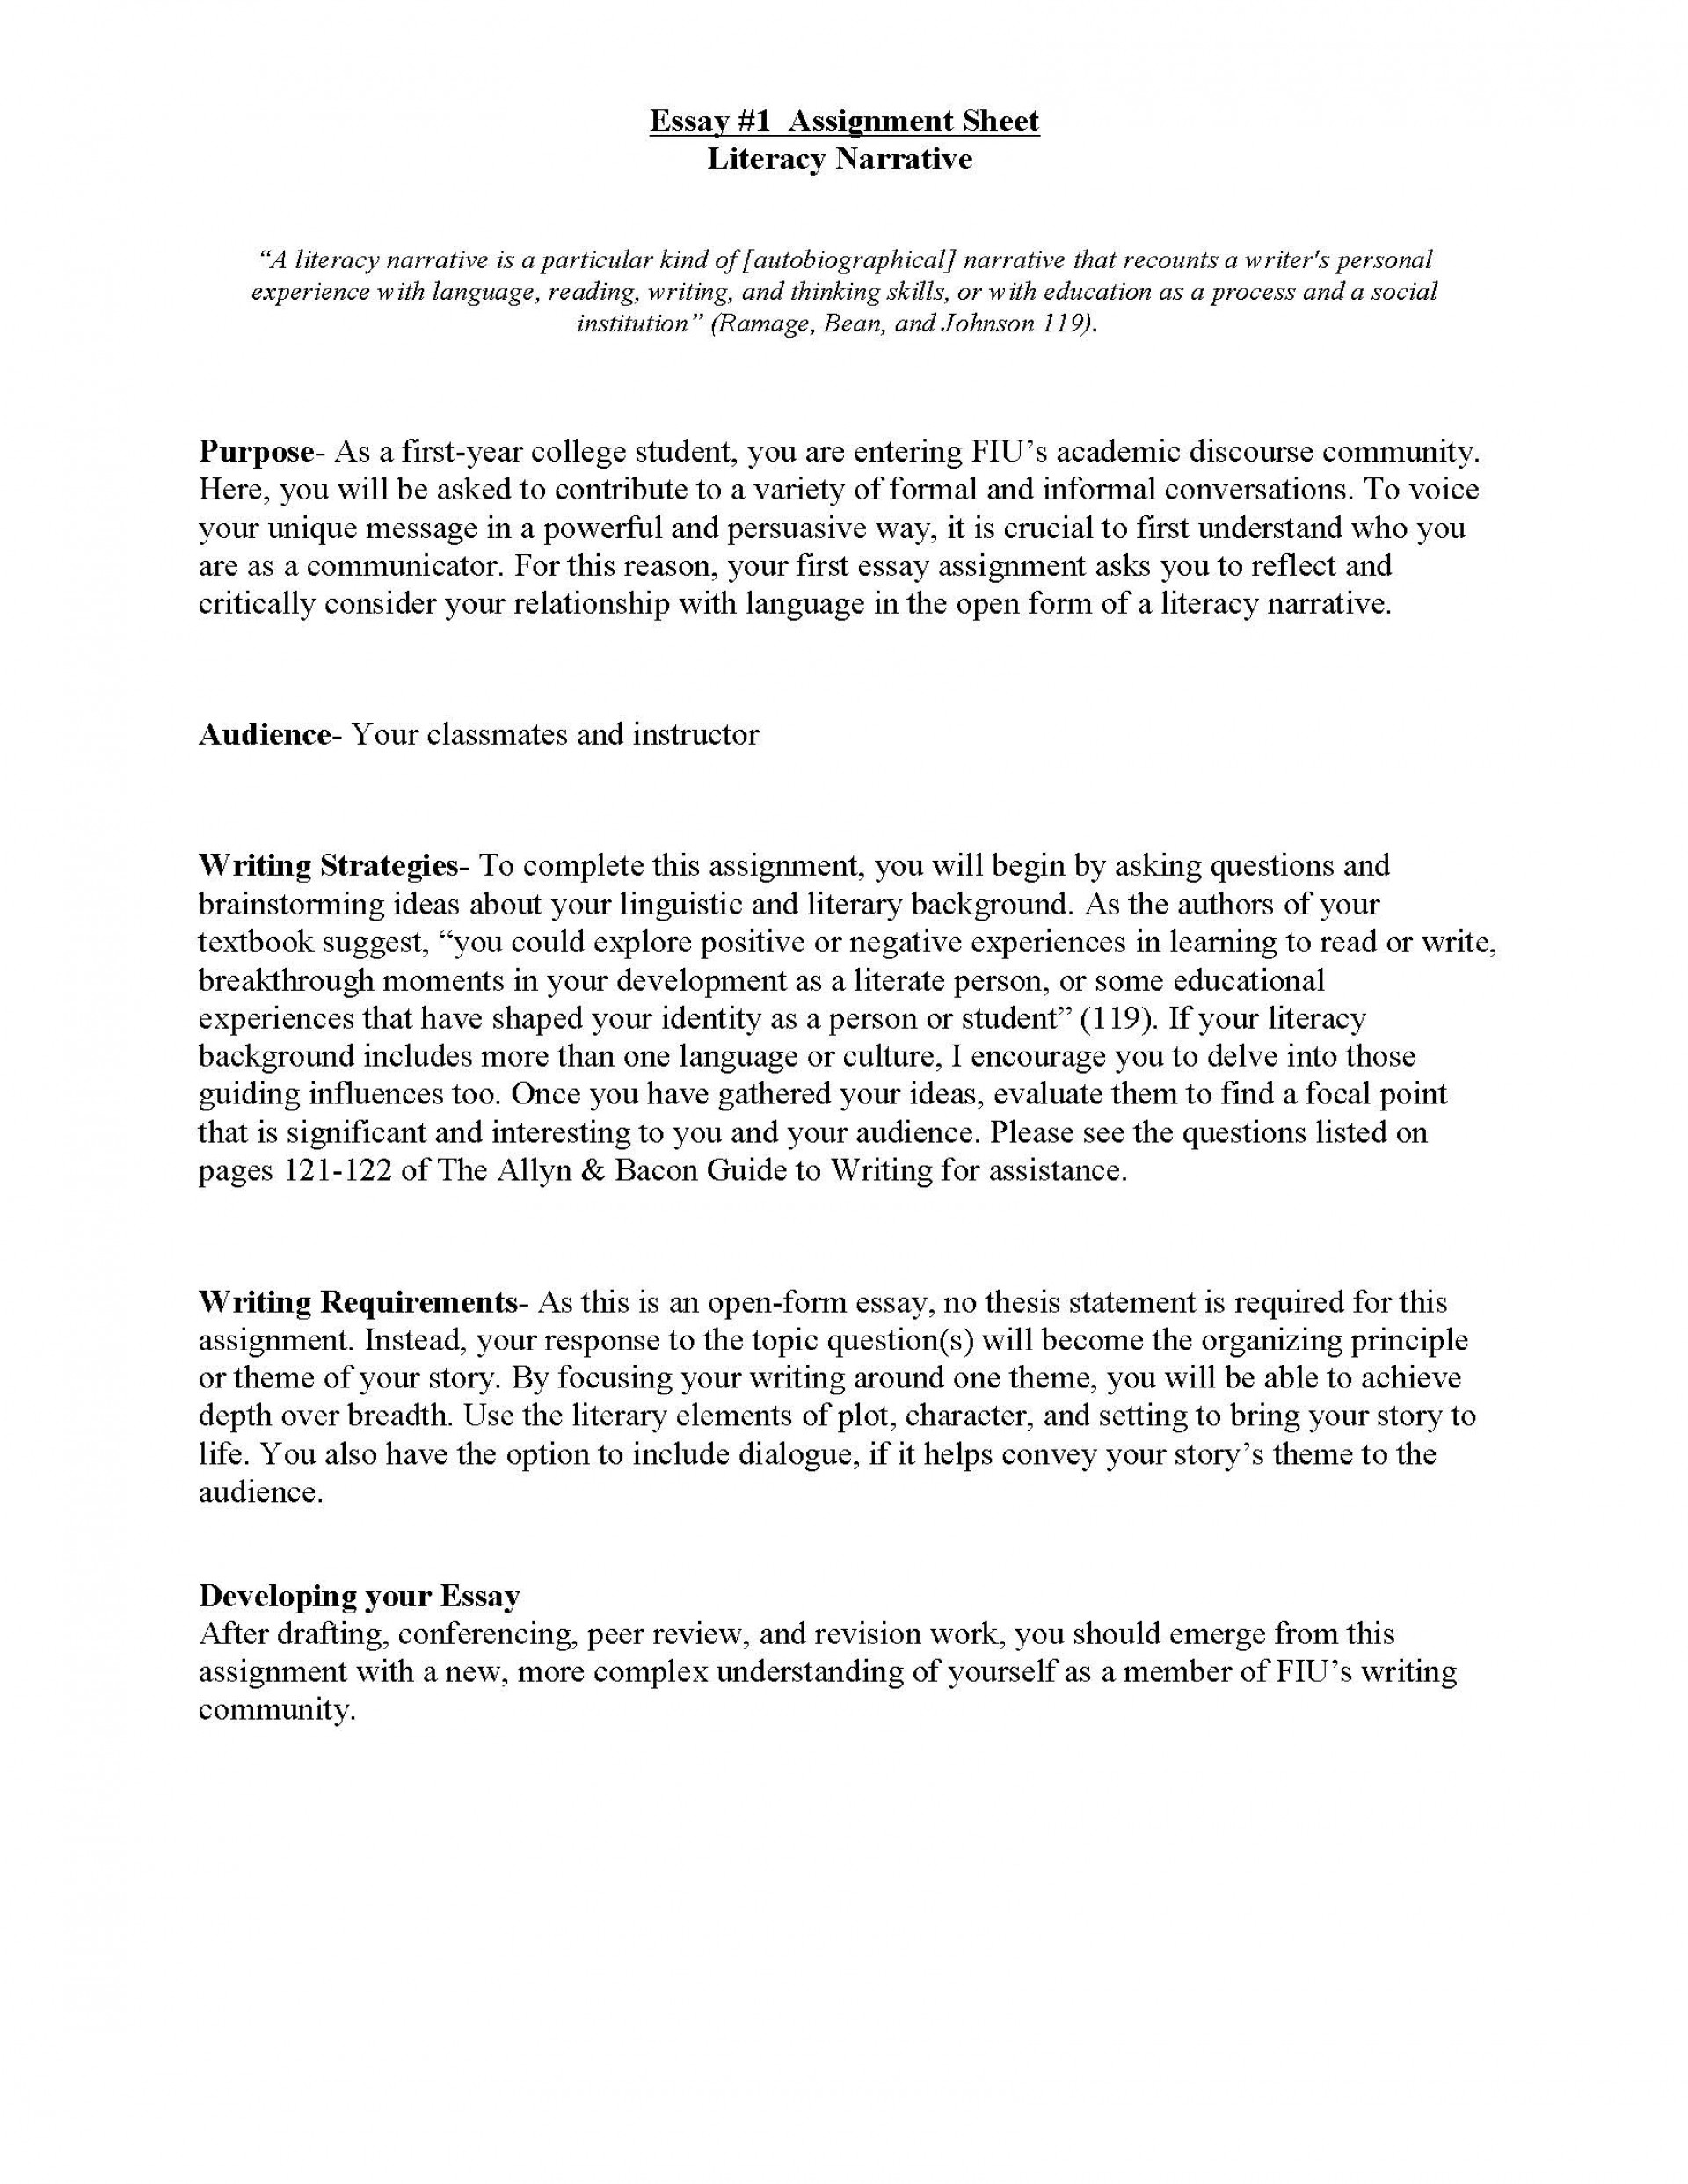 020 Narrative Essay Sample Example Literacy Unit Assignment Spring 2012 Page 1 Dreaded Questions Interesting Samples Spm 1920